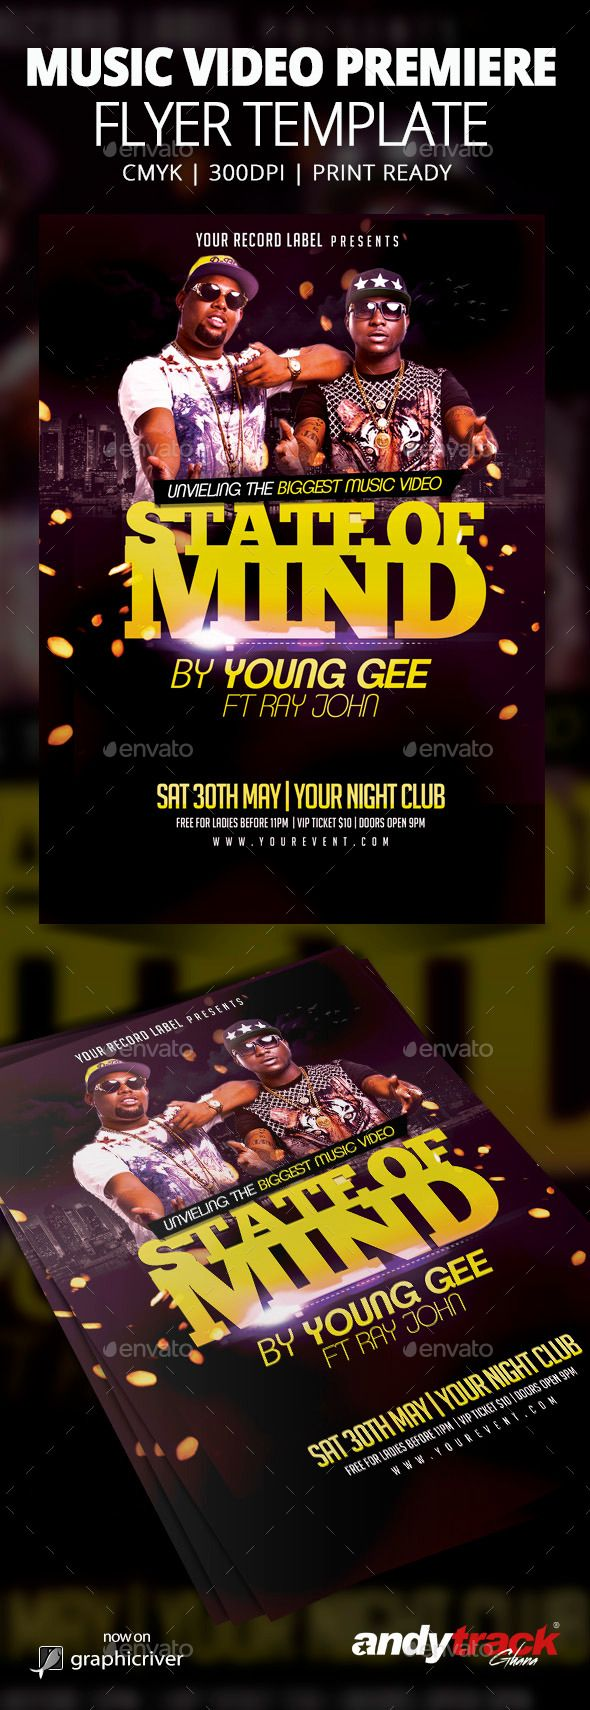 Music Video Premiere Flyer Template Psd Buy And Download Http